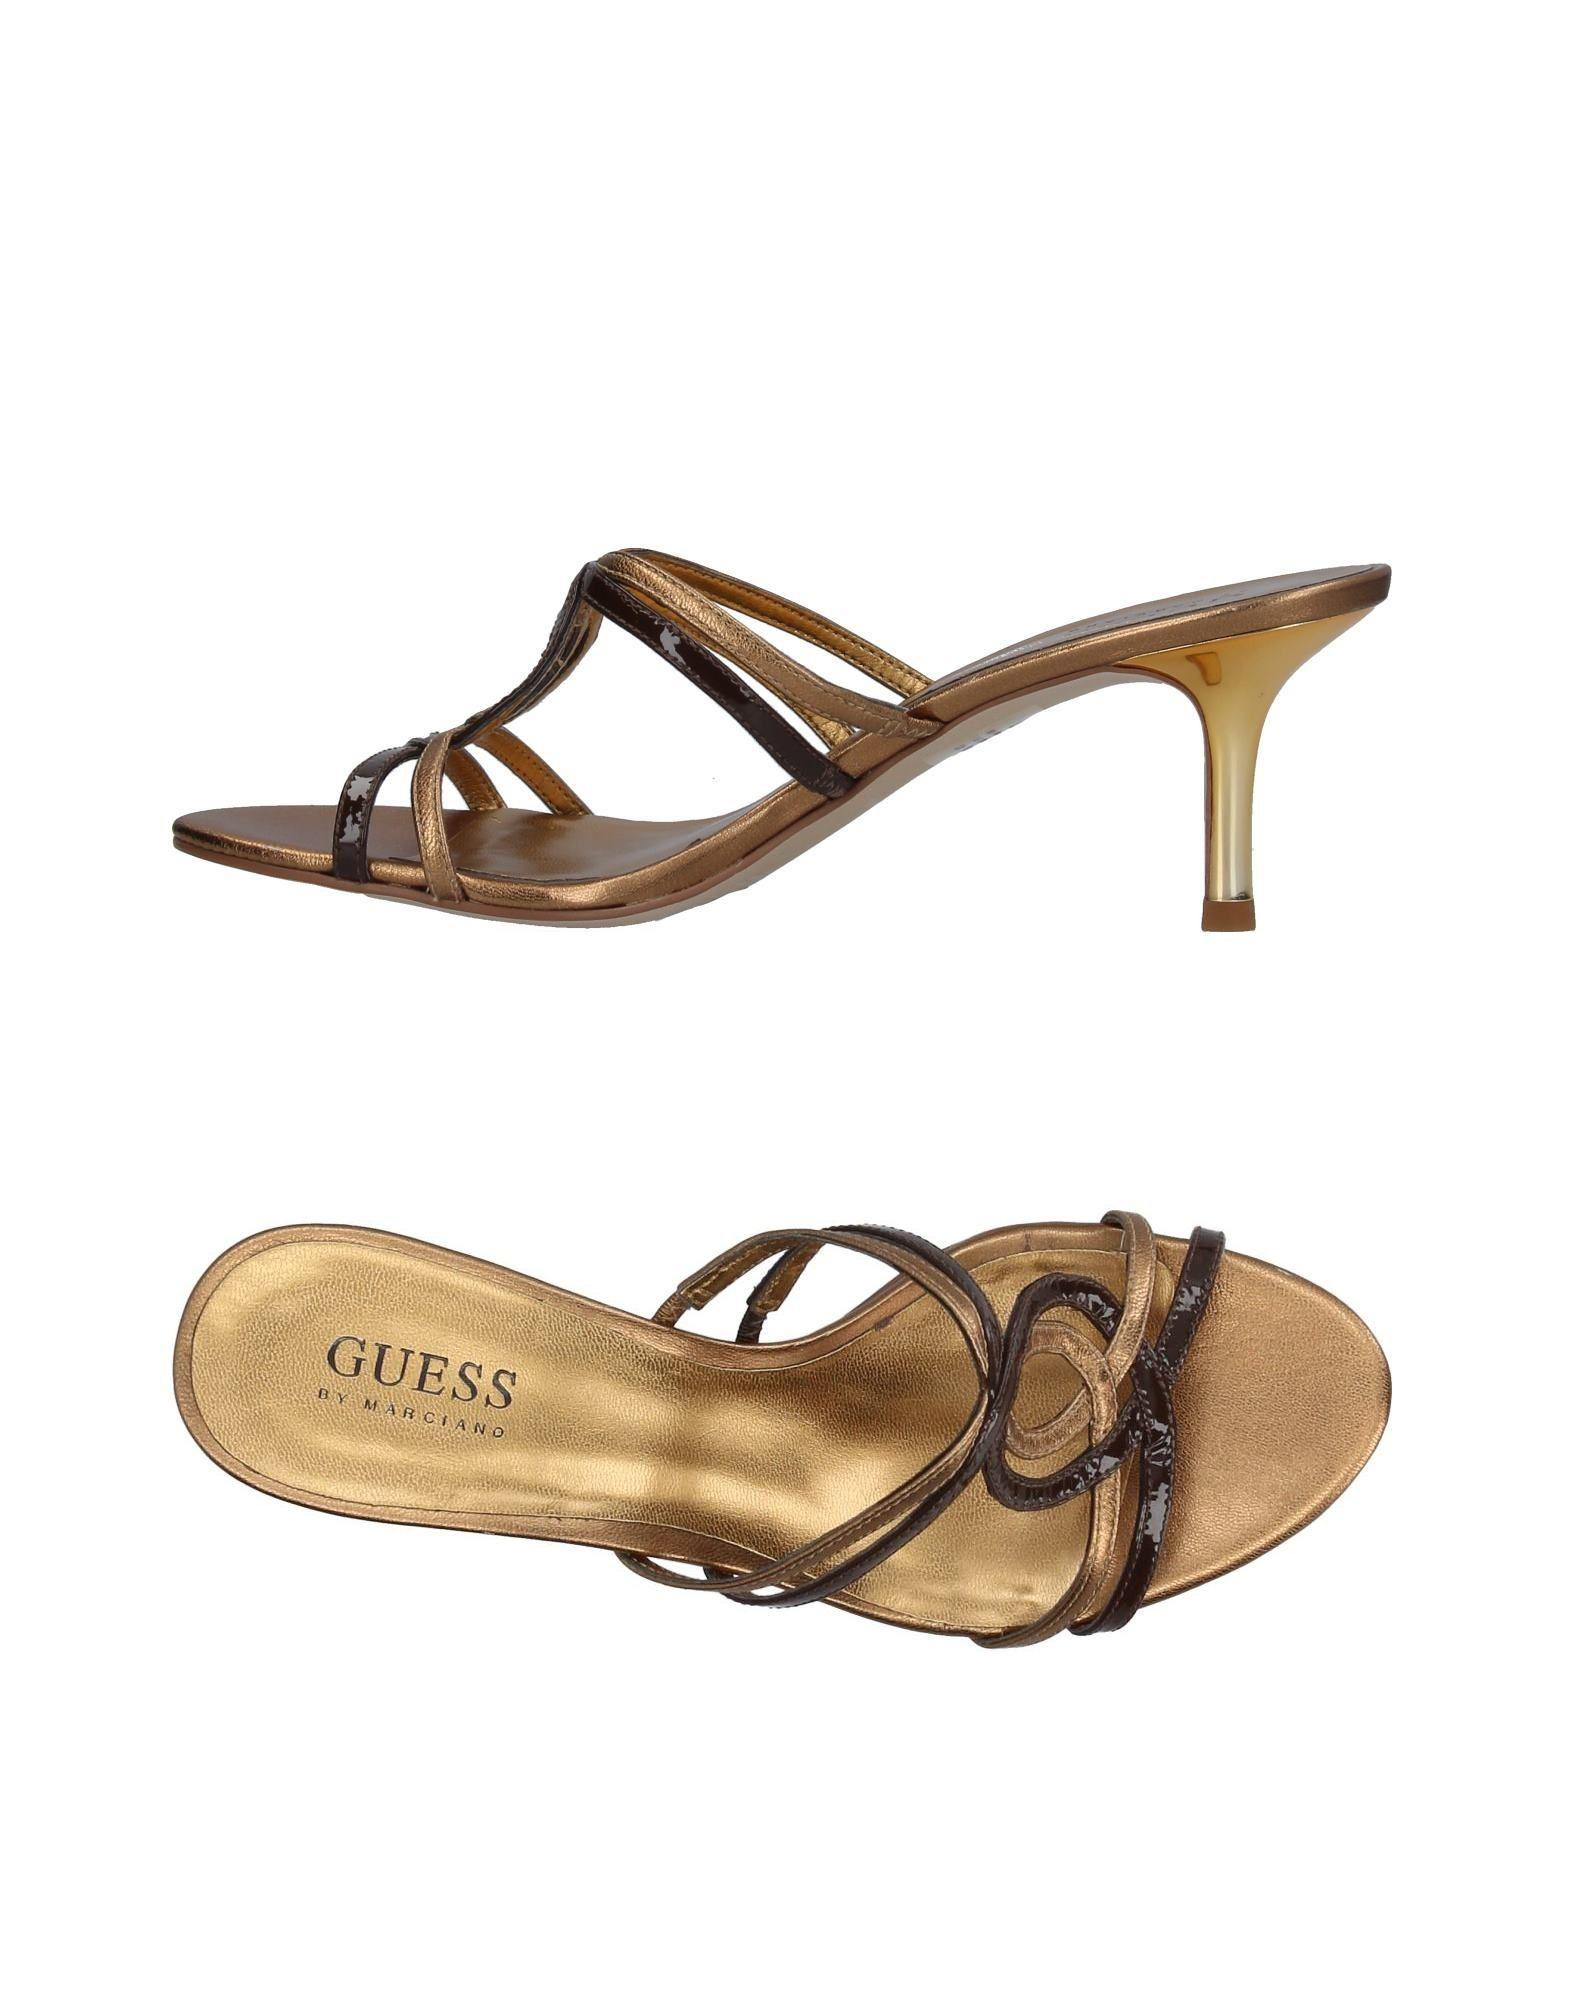 0f9cd2742891 Lyst - Guess Sandals in Brown